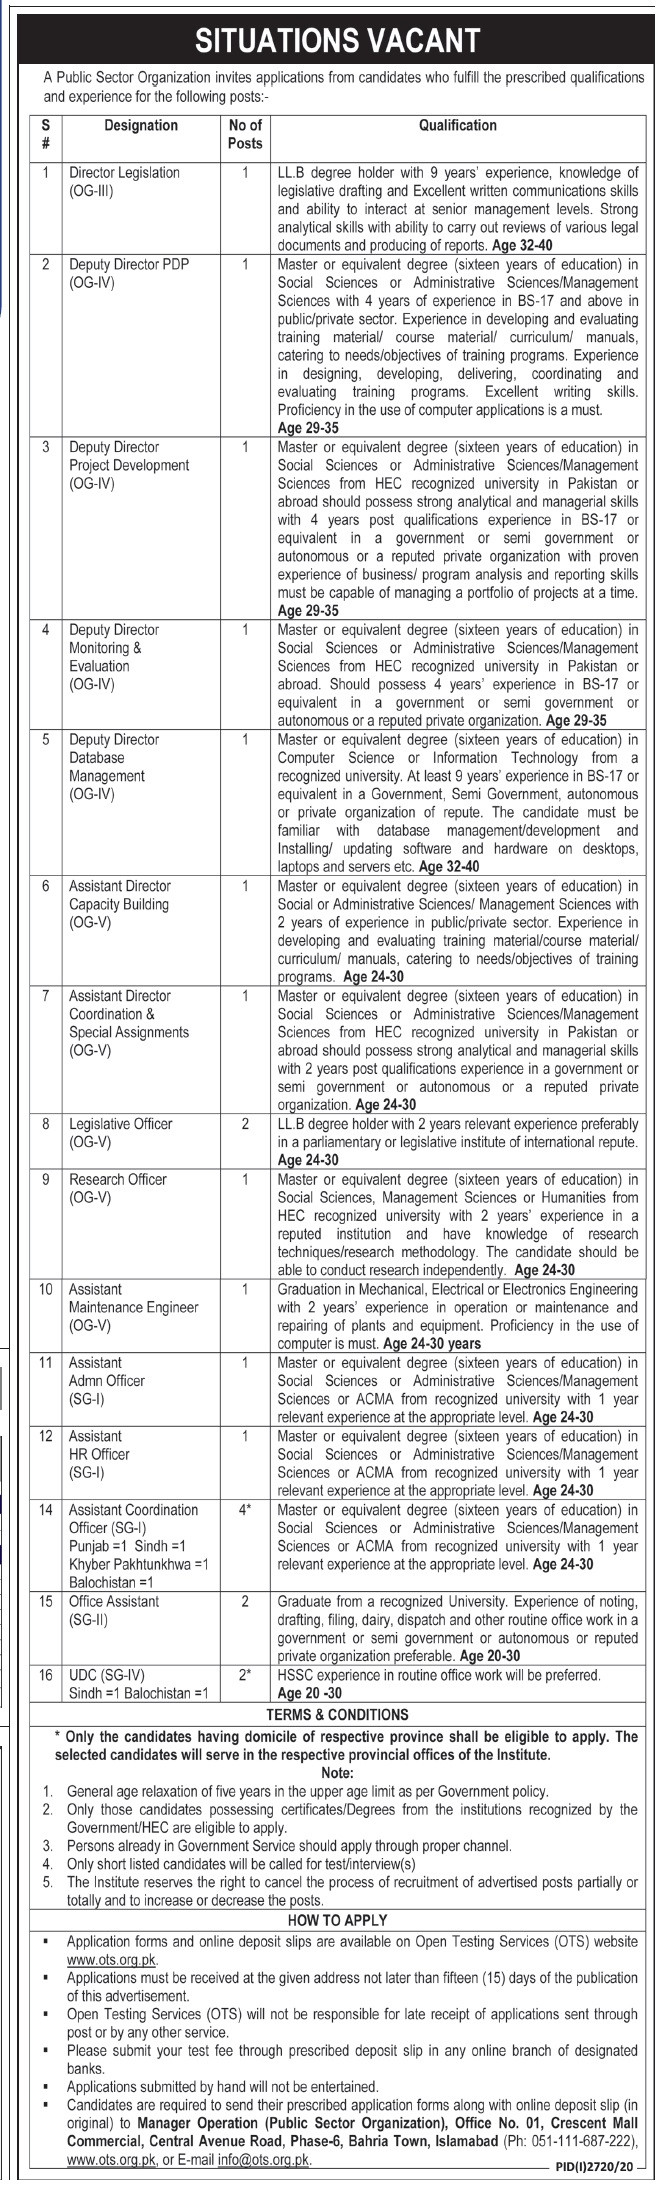 Public Sector Organization Islamabad Jobs Nov 2020 Deputy Director